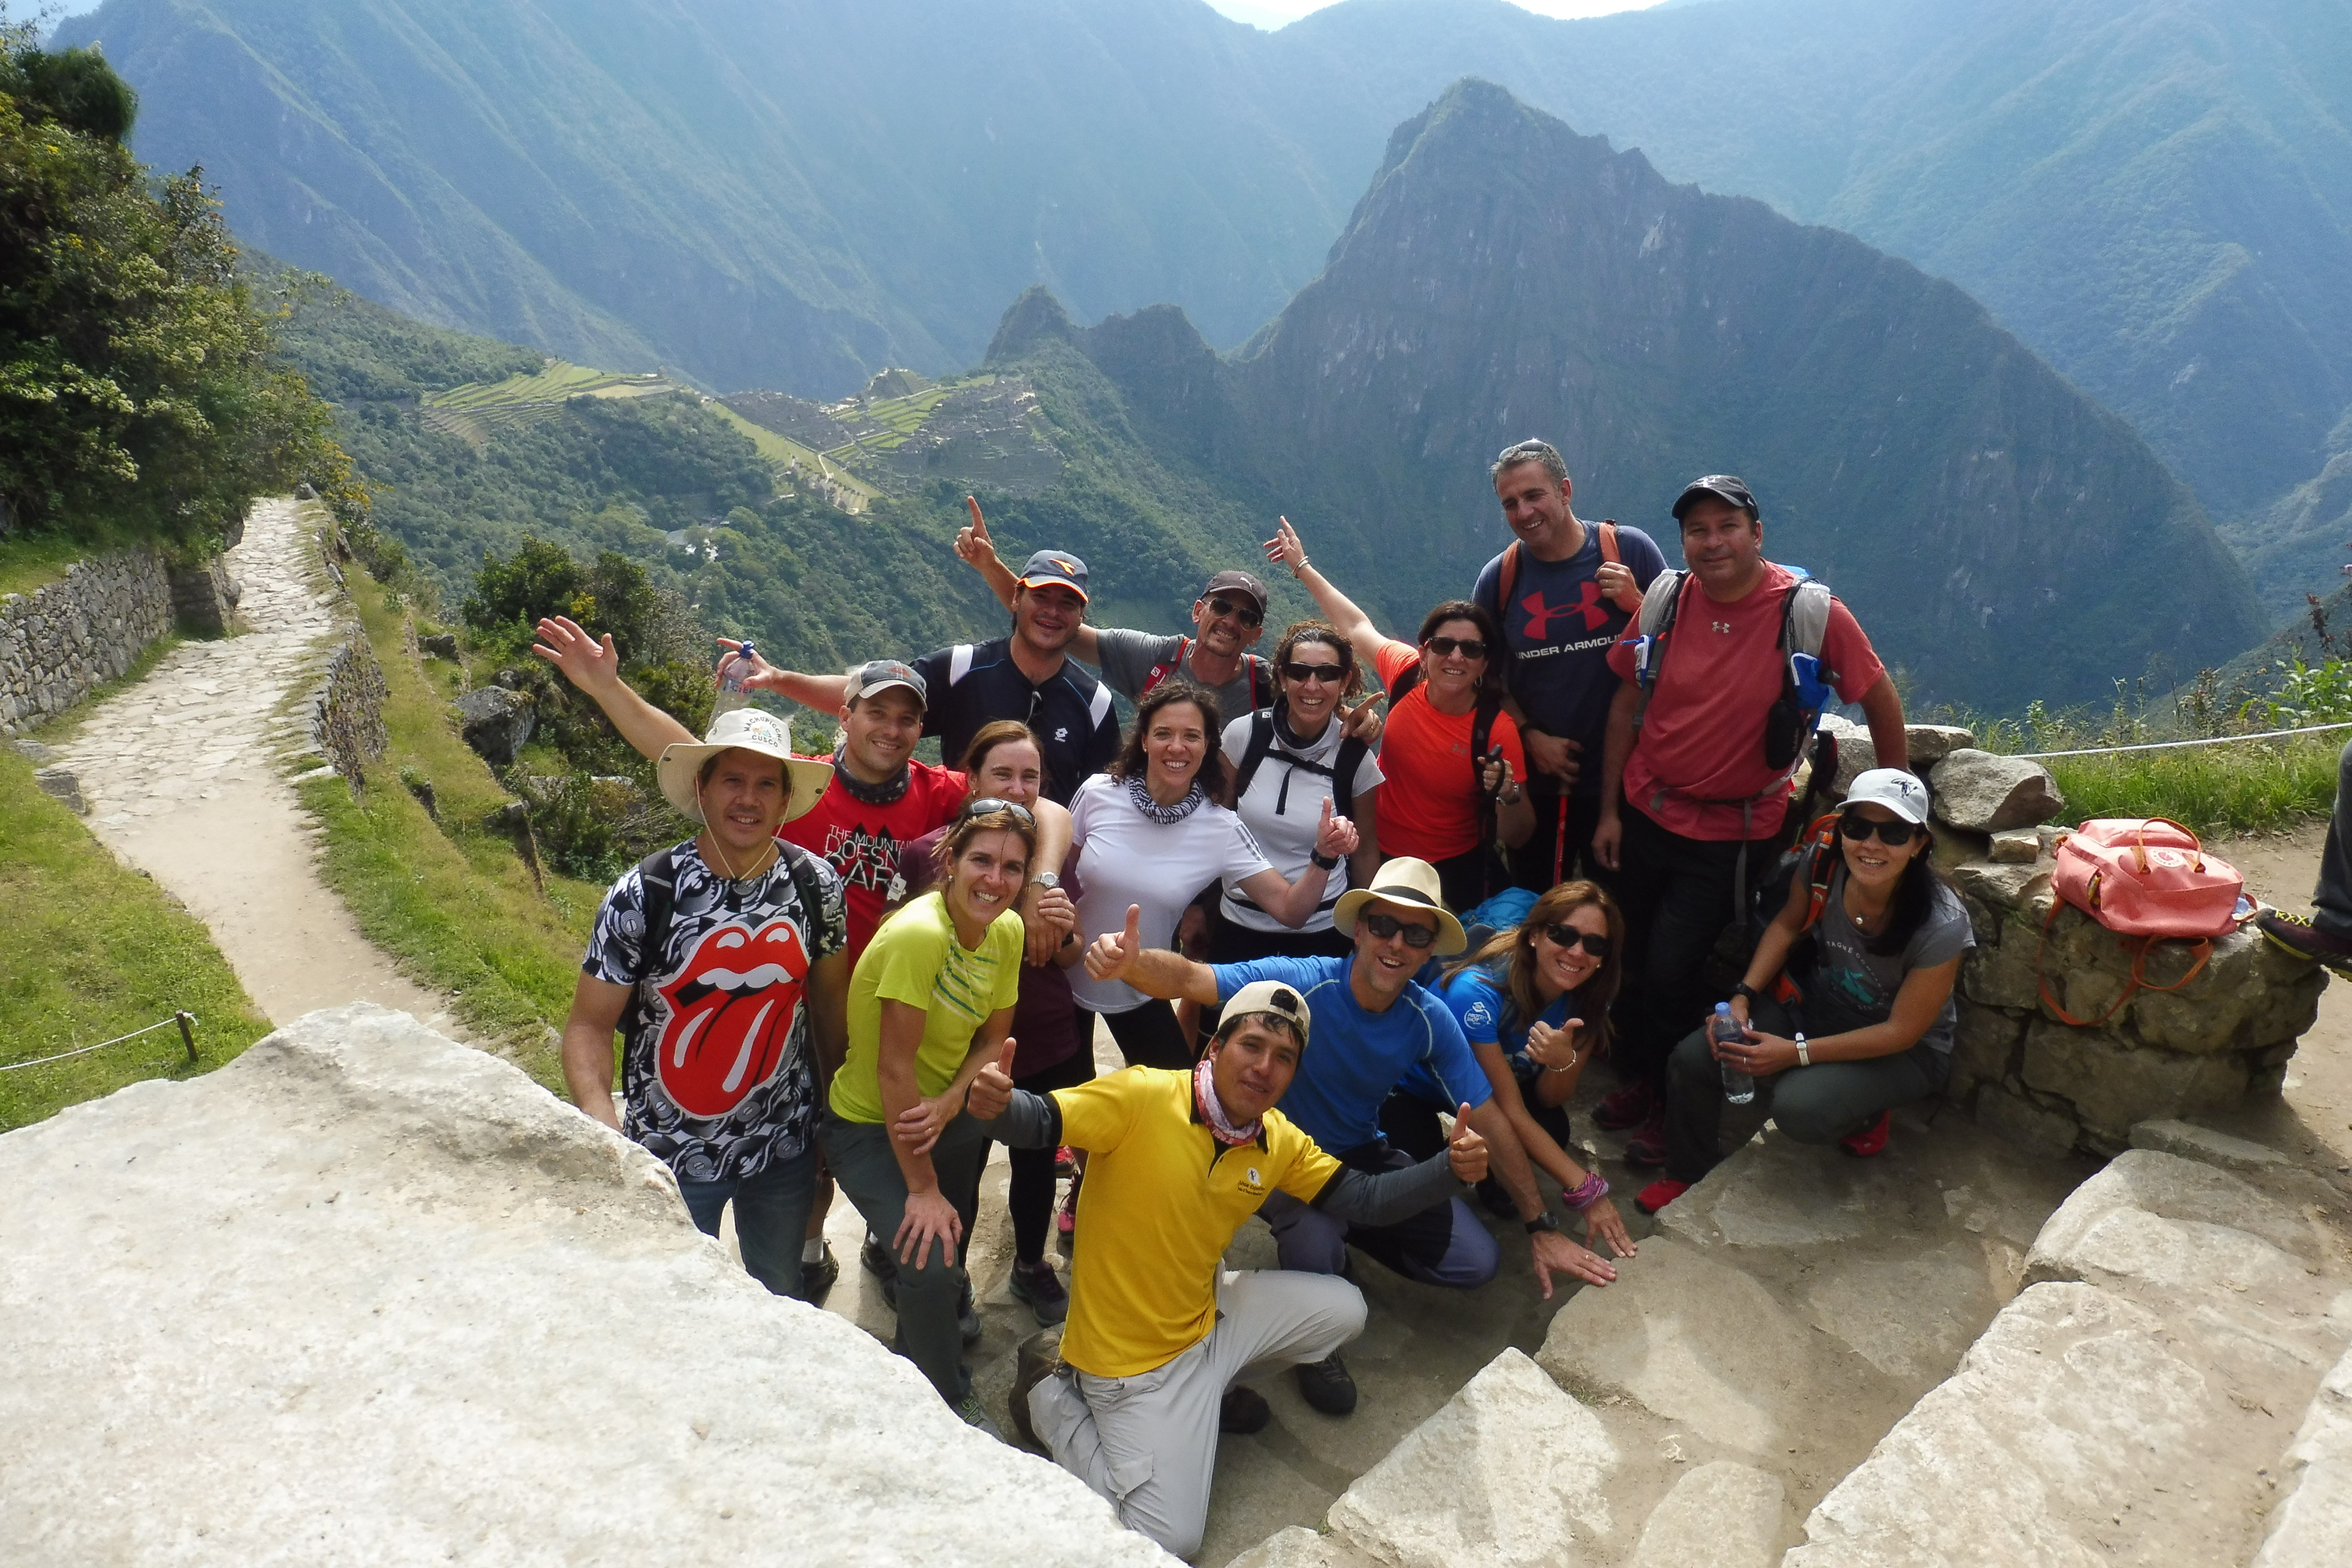 Inca Trail 2D - Quinoa Expeditions